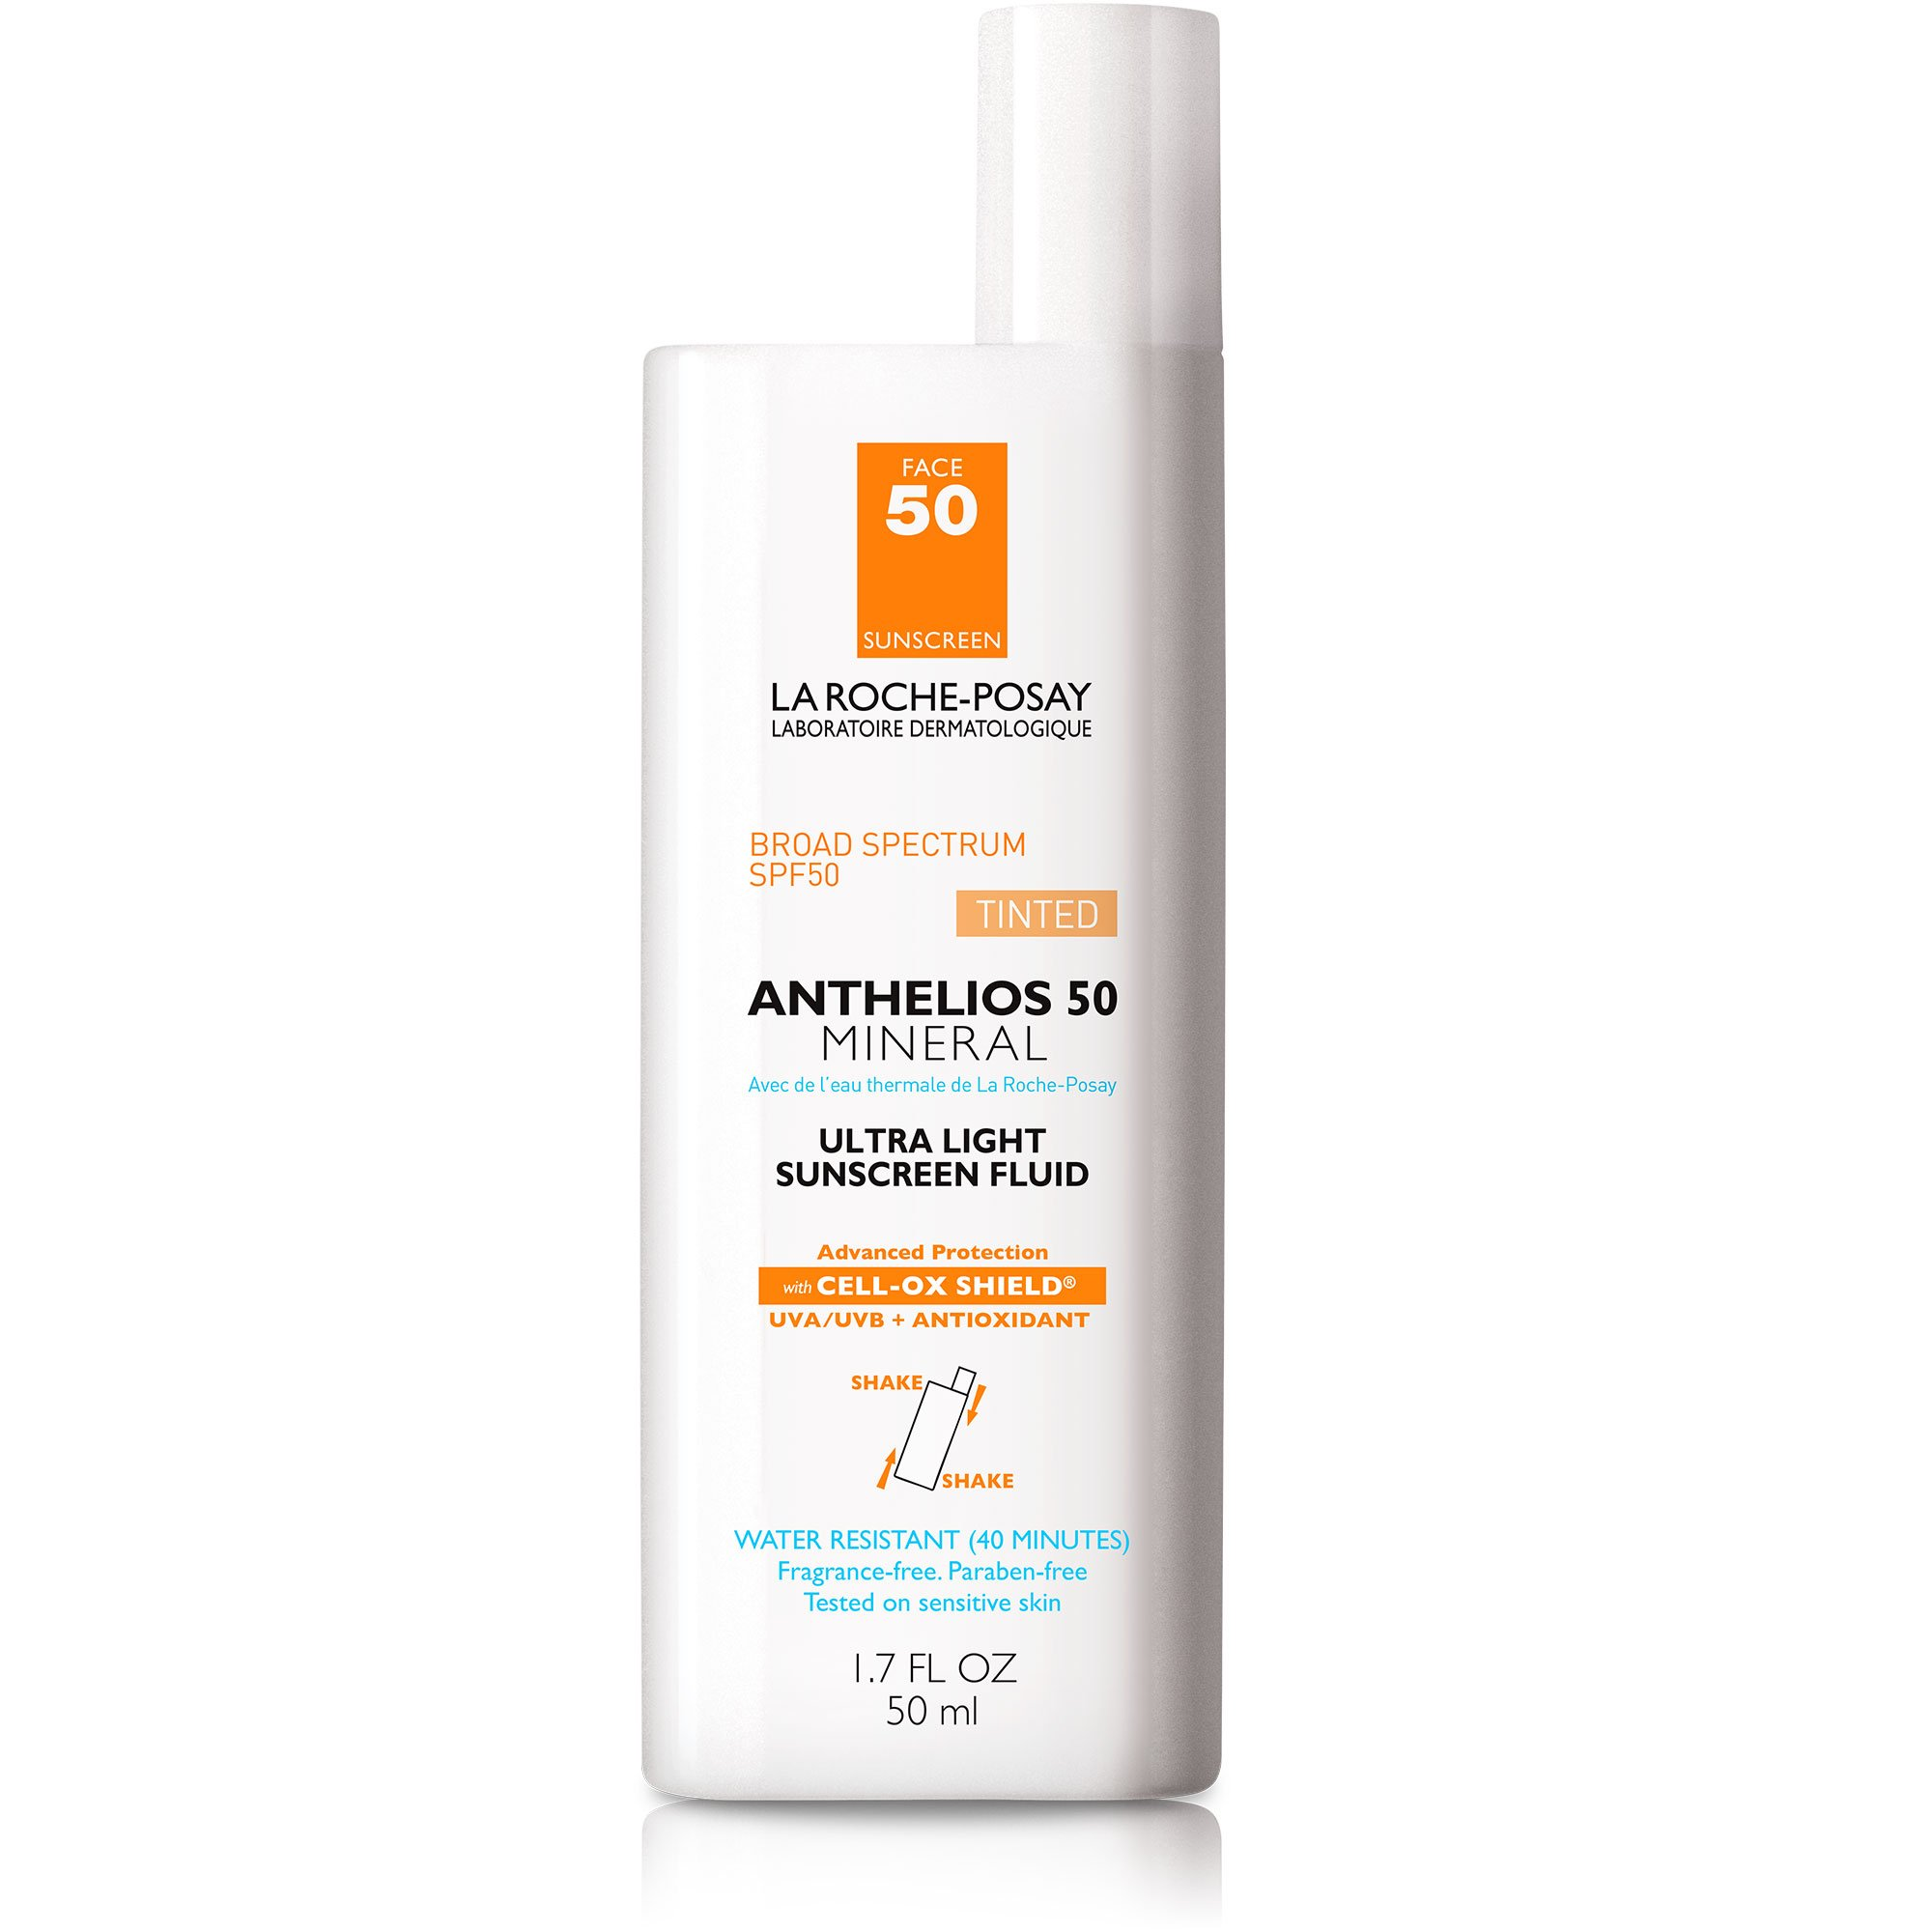 La Roche-Posay Anthelios Tinted Mineral Sunscreen for Face SPF 50, Ultra-Light Fluid with Titanium Dioxide for Sensitive Skin, 1.7 Fl. Oz. by La Roche-Posay